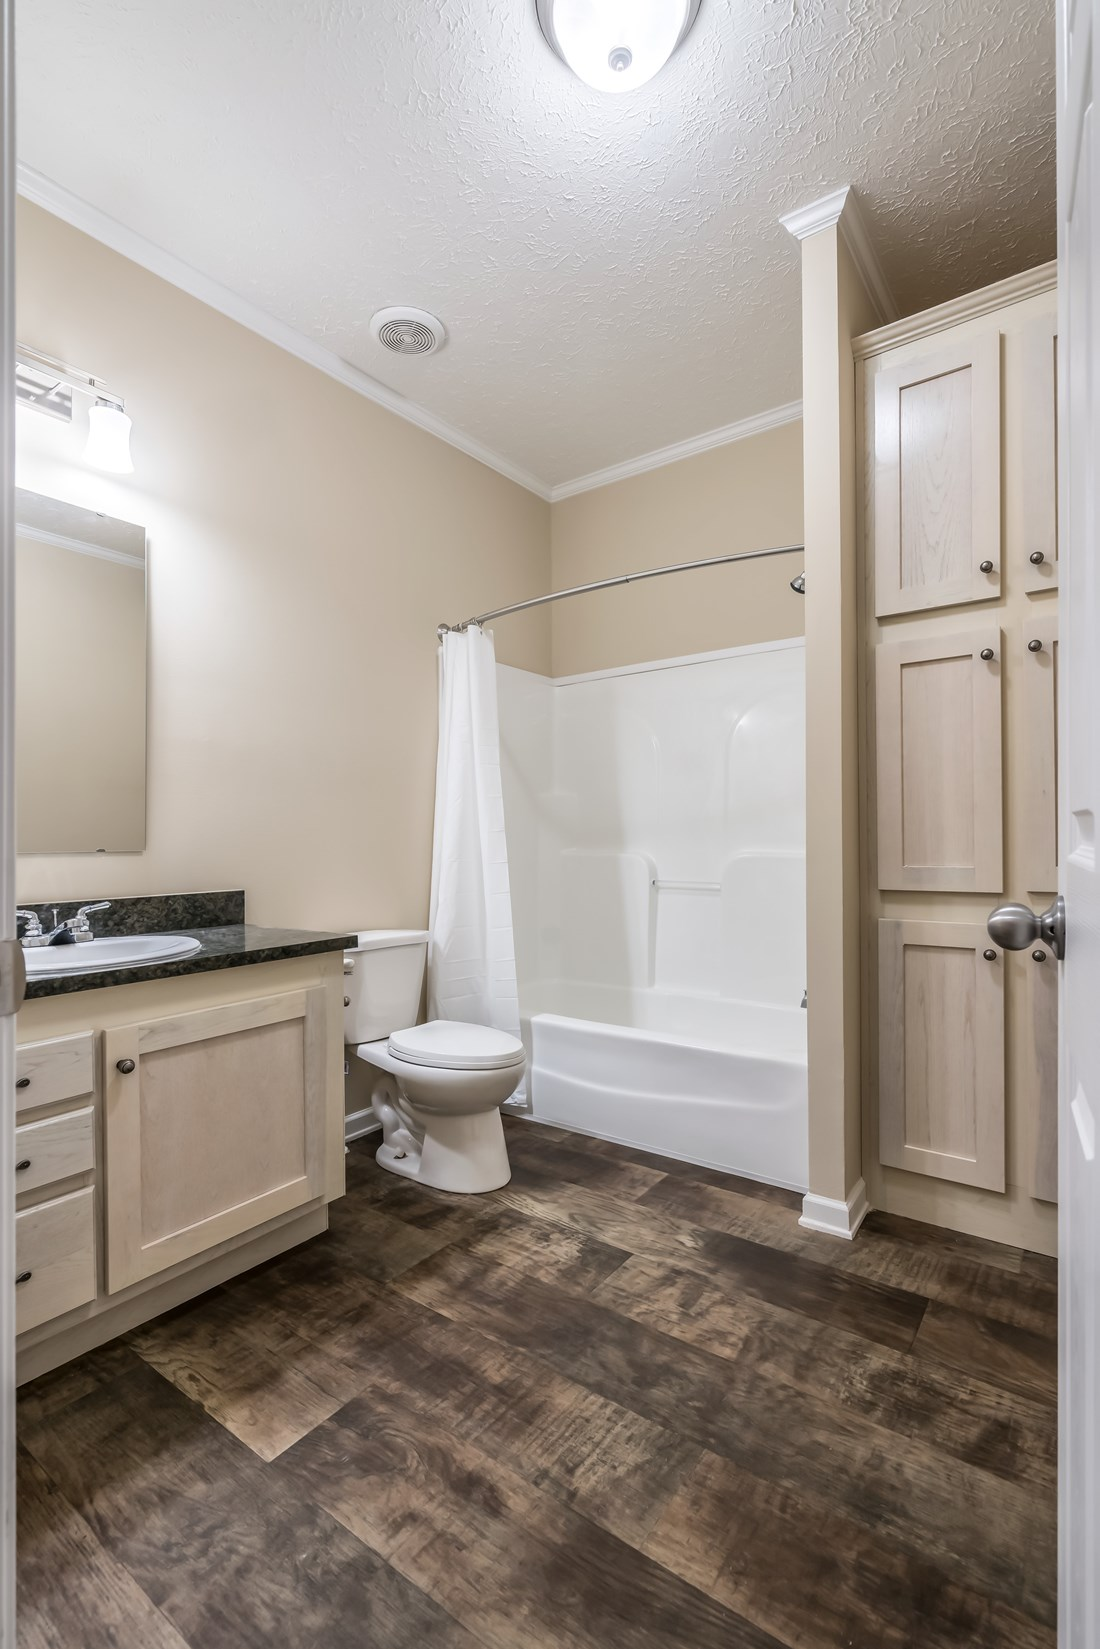 The 2088 HERITAGE Guest Bathroom. This Manufactured Mobile Home features 3 bedrooms and 2 baths.